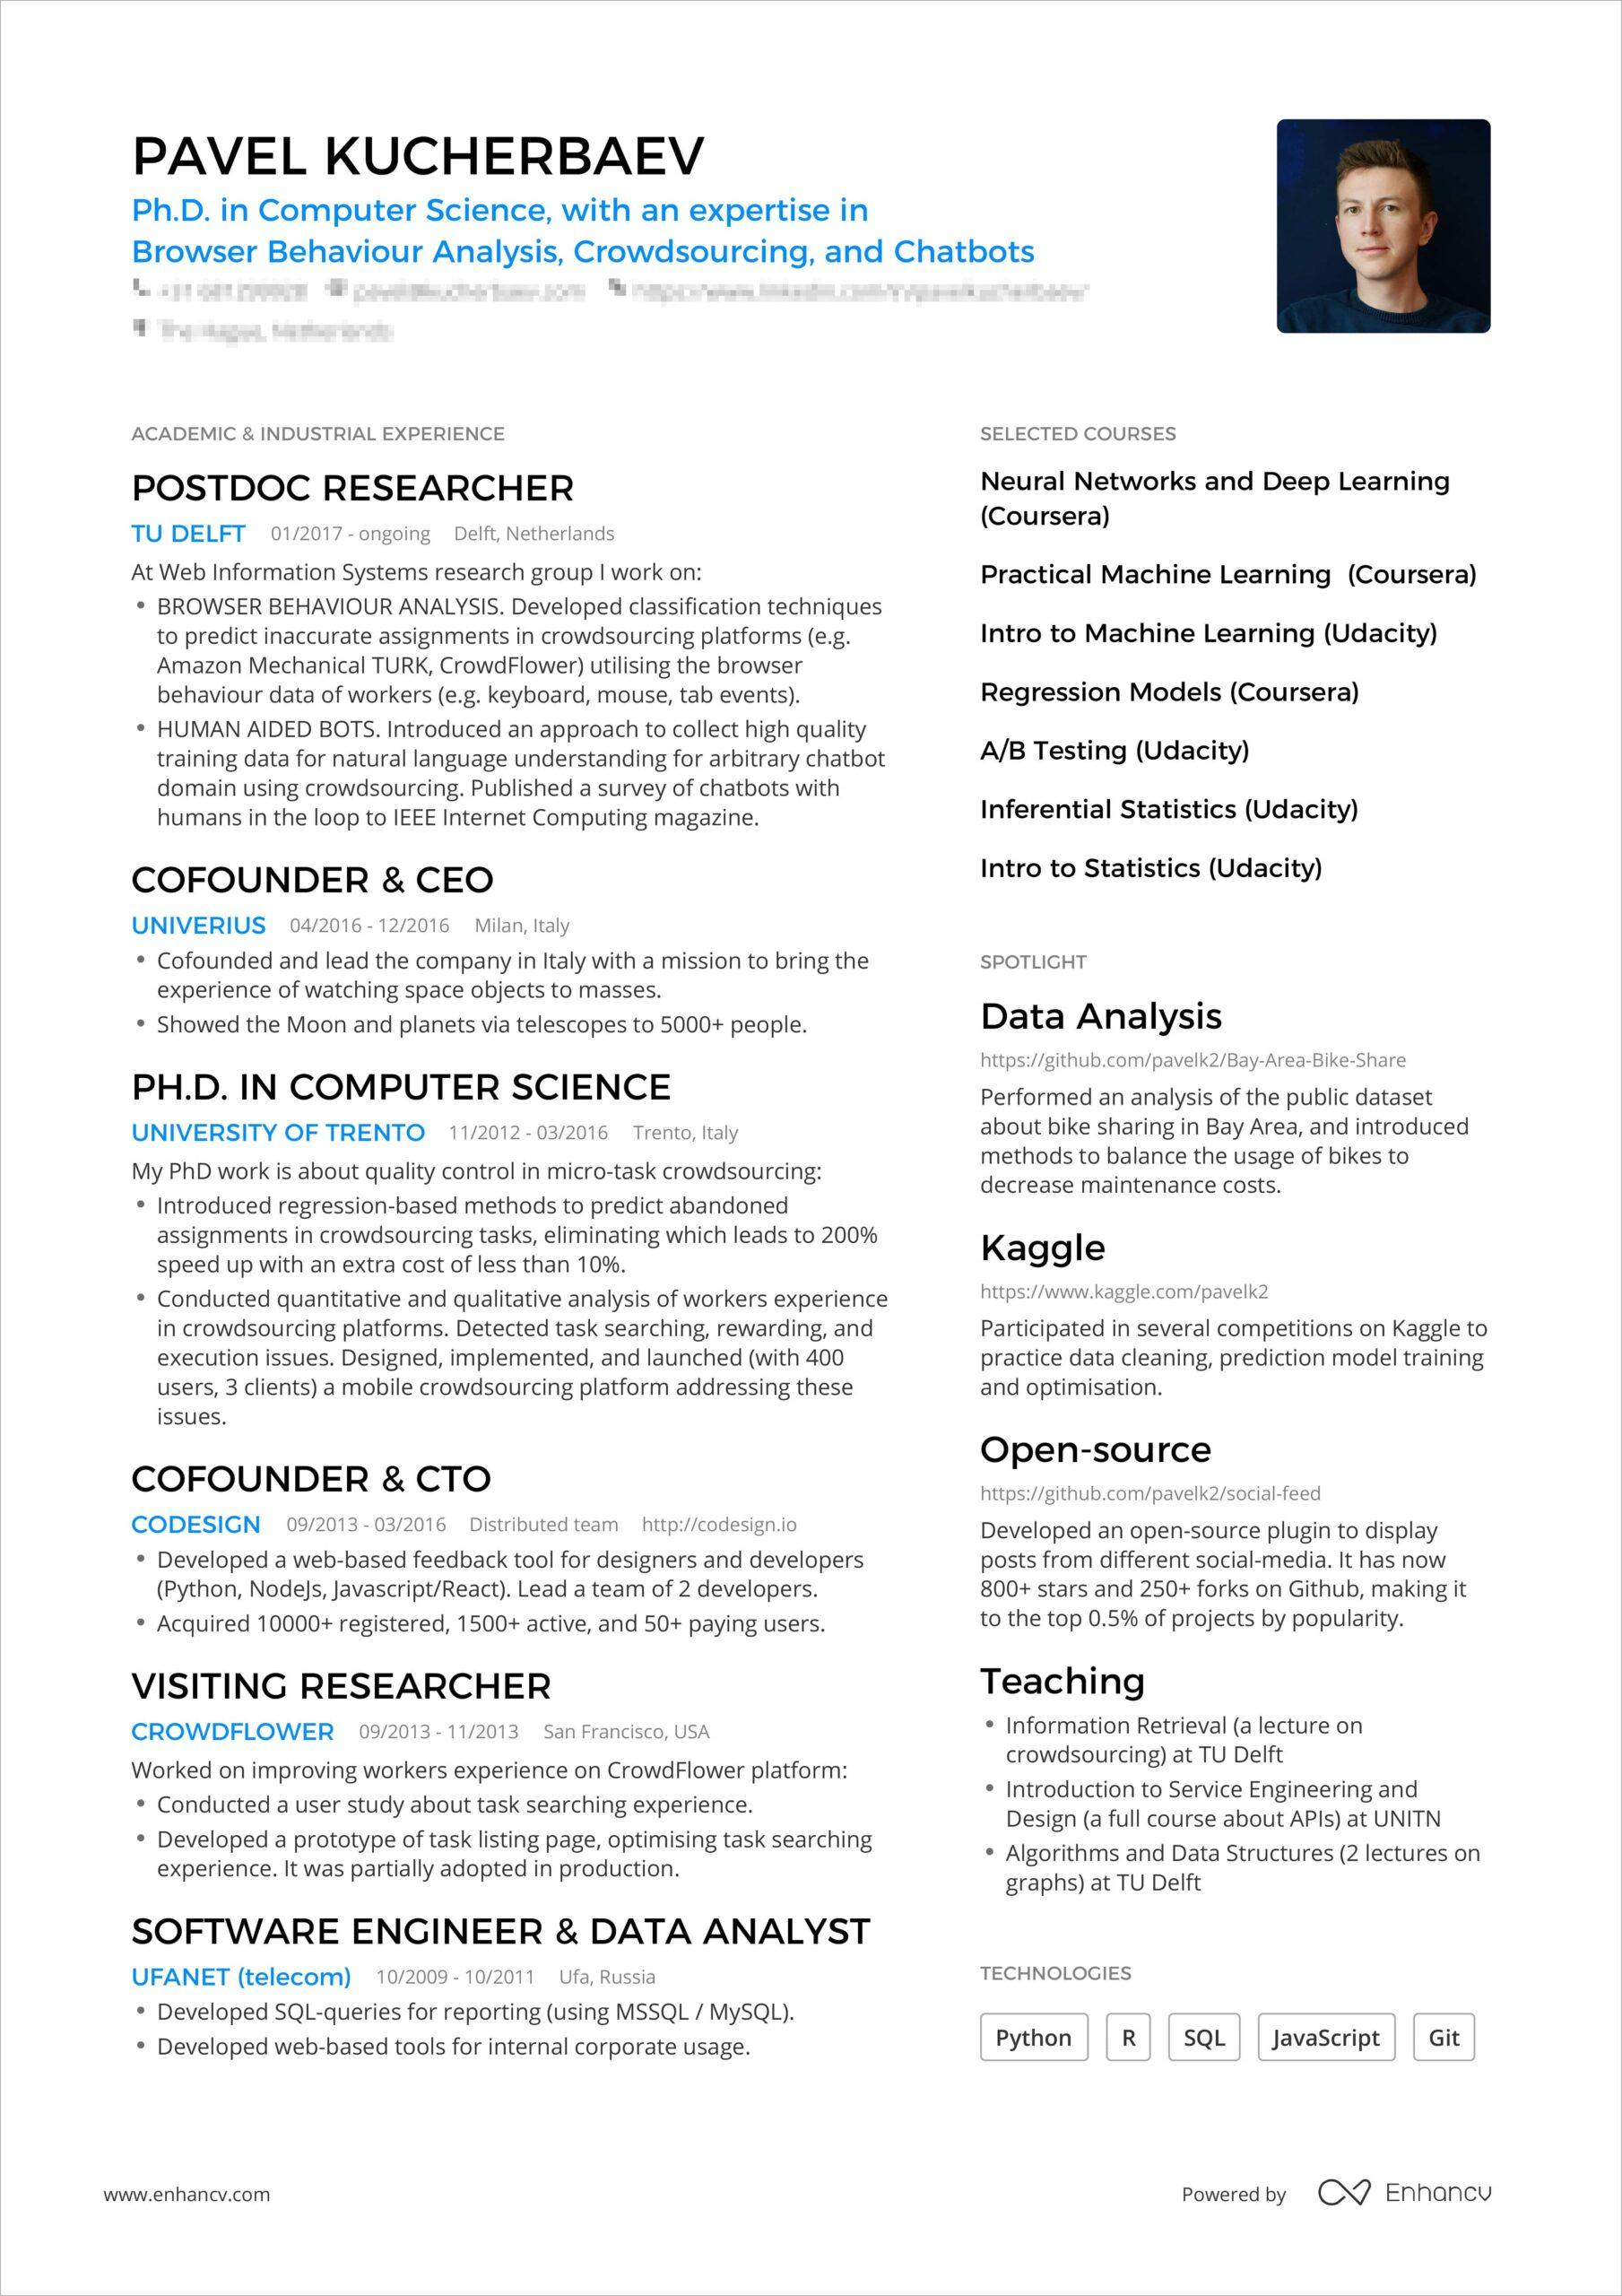 powerful one resume examples you can use now outline pavel booking bordered min customer Resume One Page Resume Outline